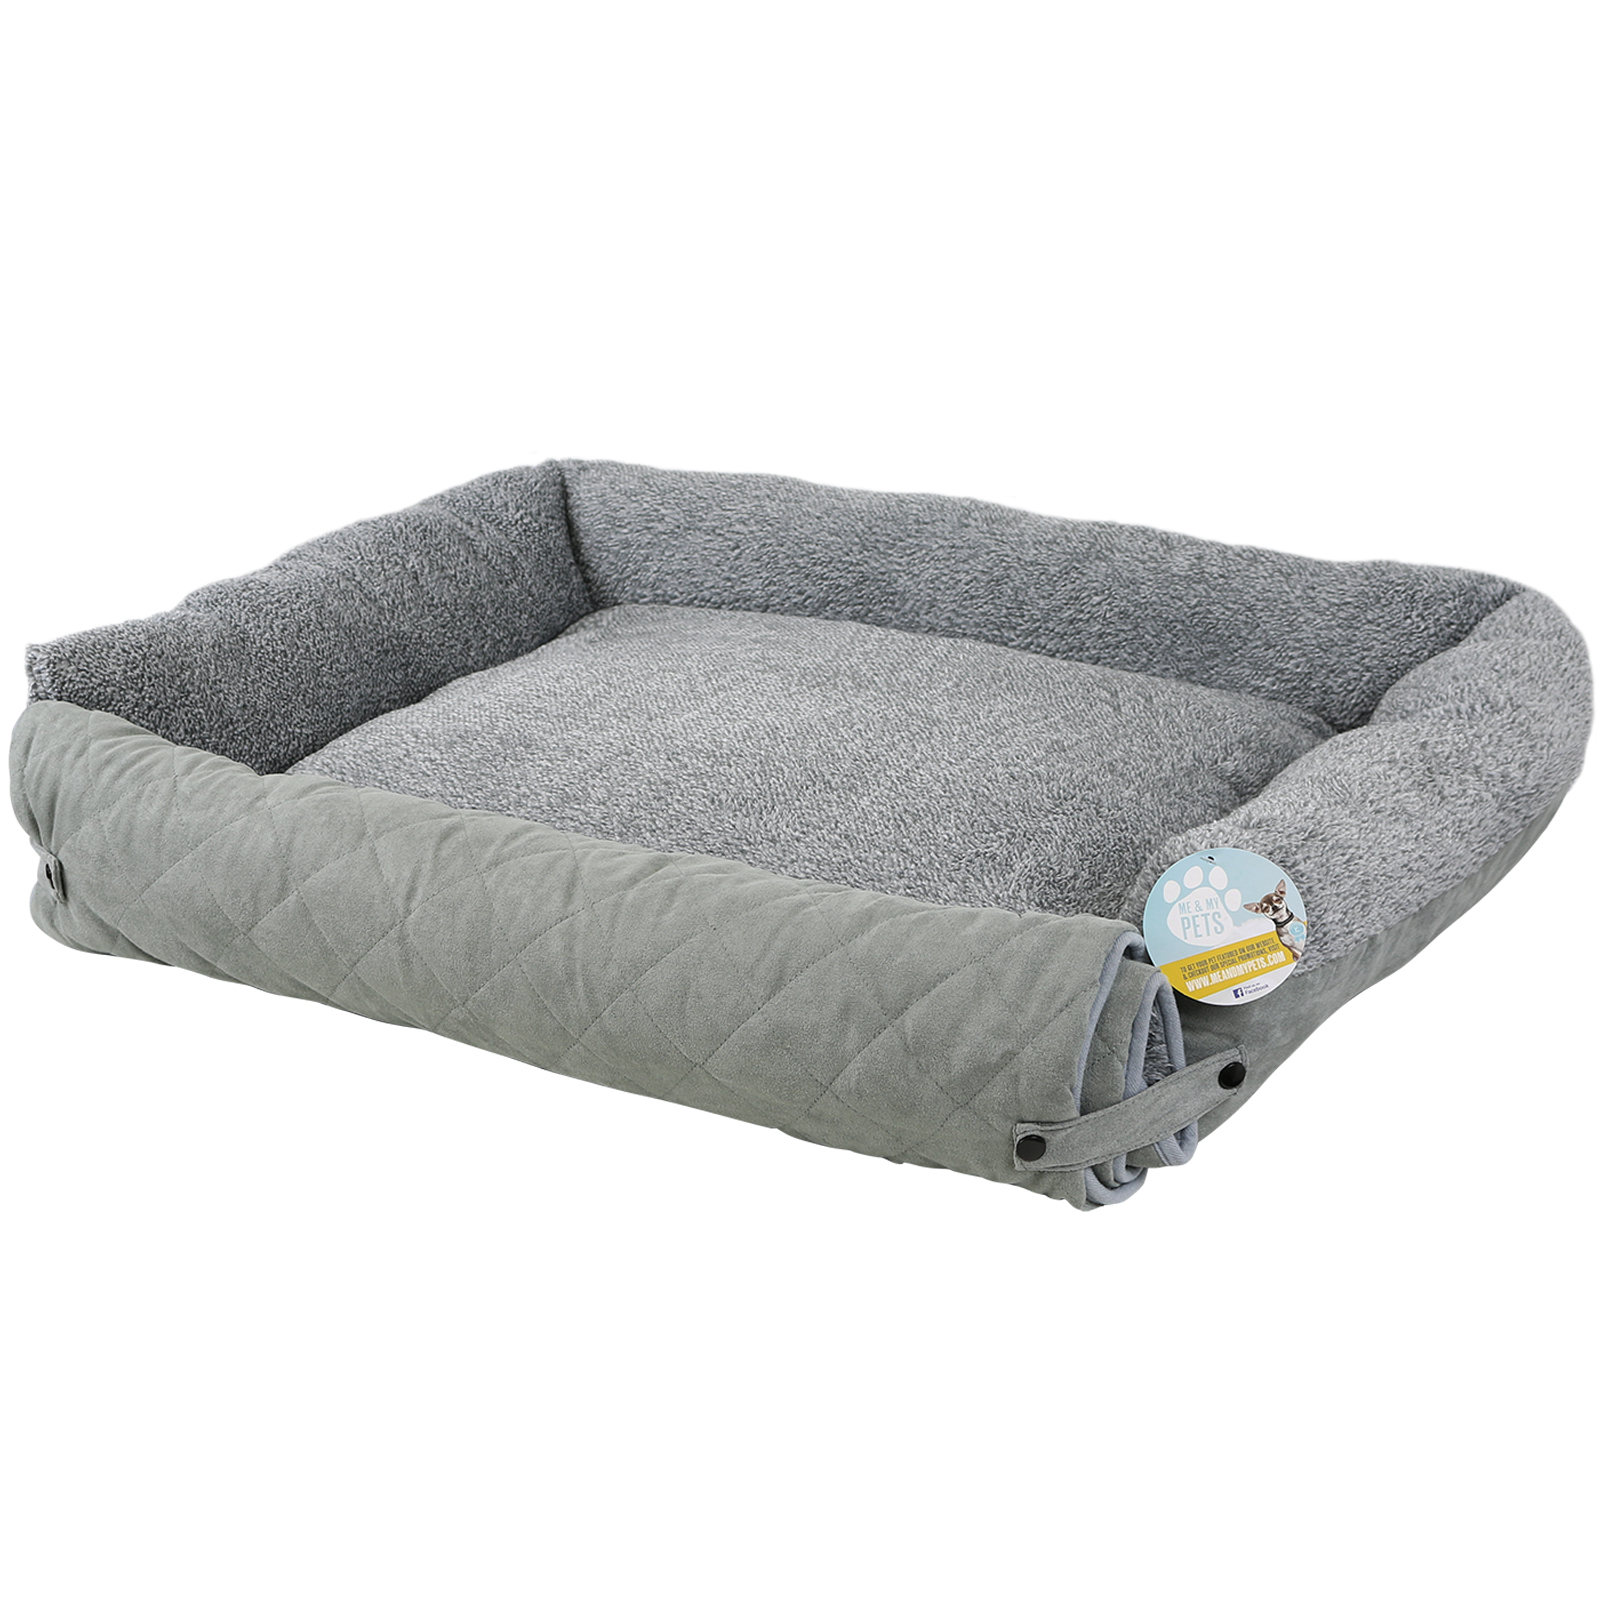 me my pet quilted grey fleece fold out cat dog bed sofa couch chair protector ebay. Black Bedroom Furniture Sets. Home Design Ideas